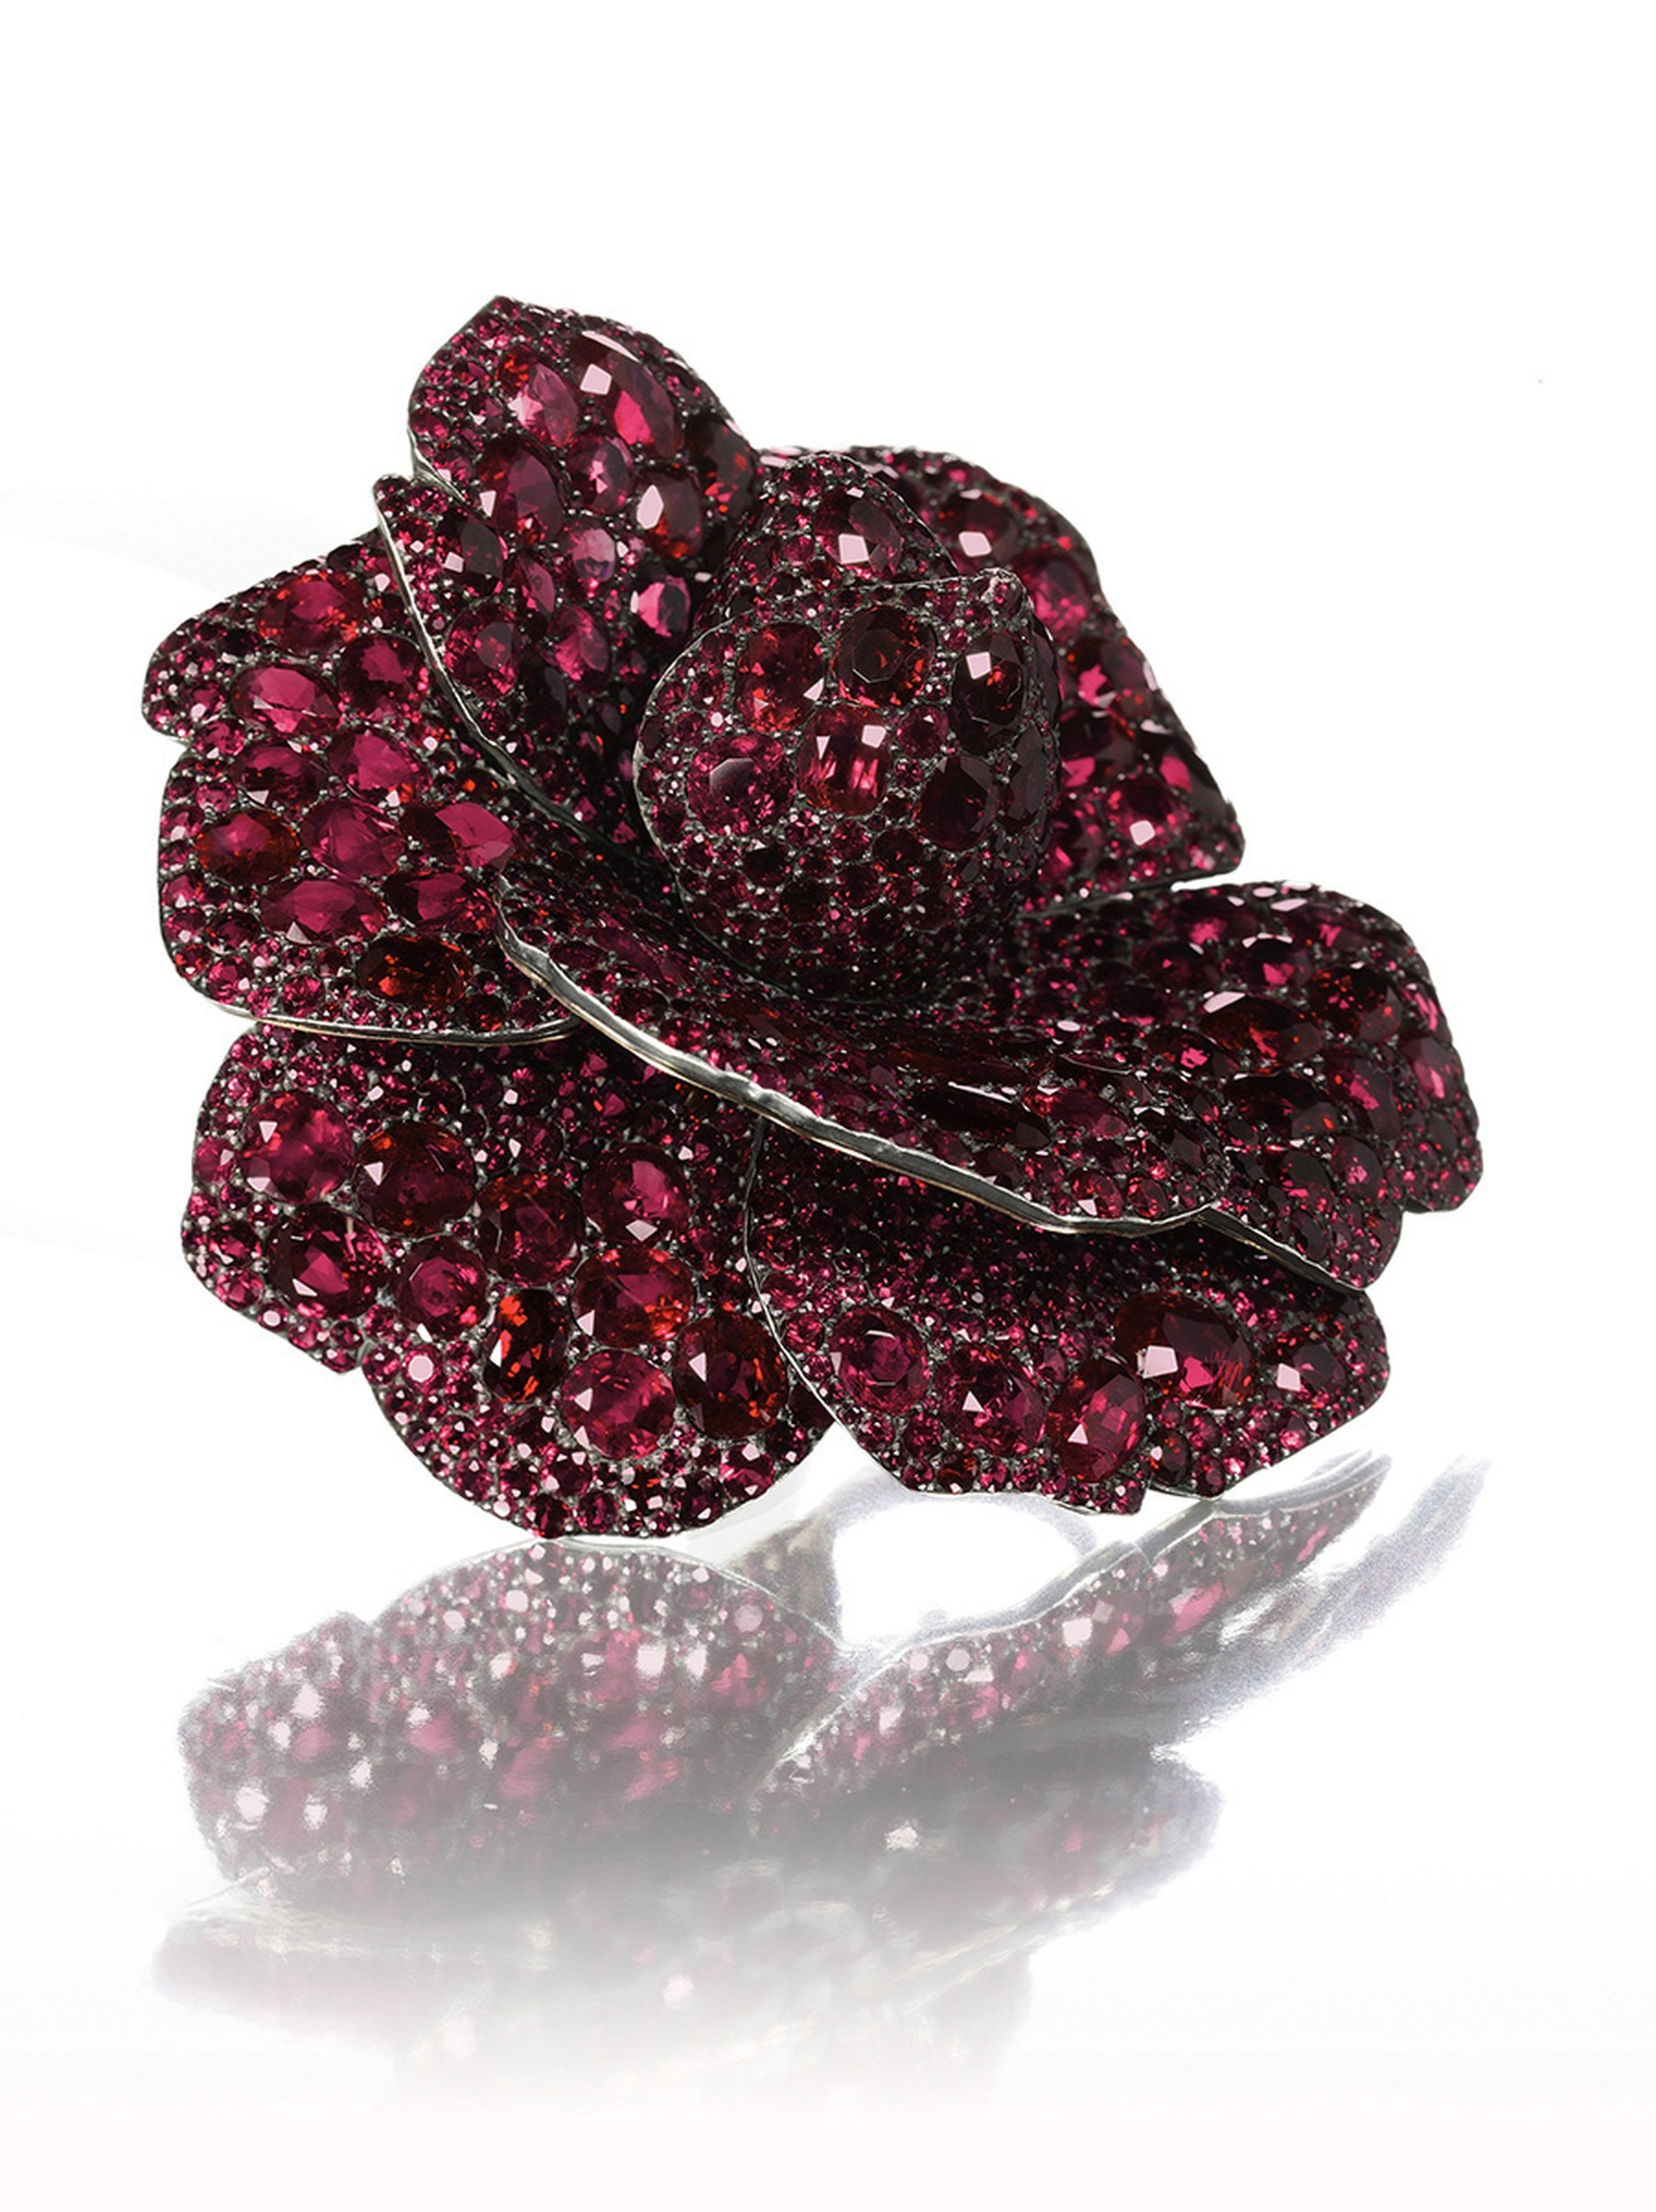 A-ruby-and-diamond-Camellia-flower-brooch,-by-JAR-2003.jpg